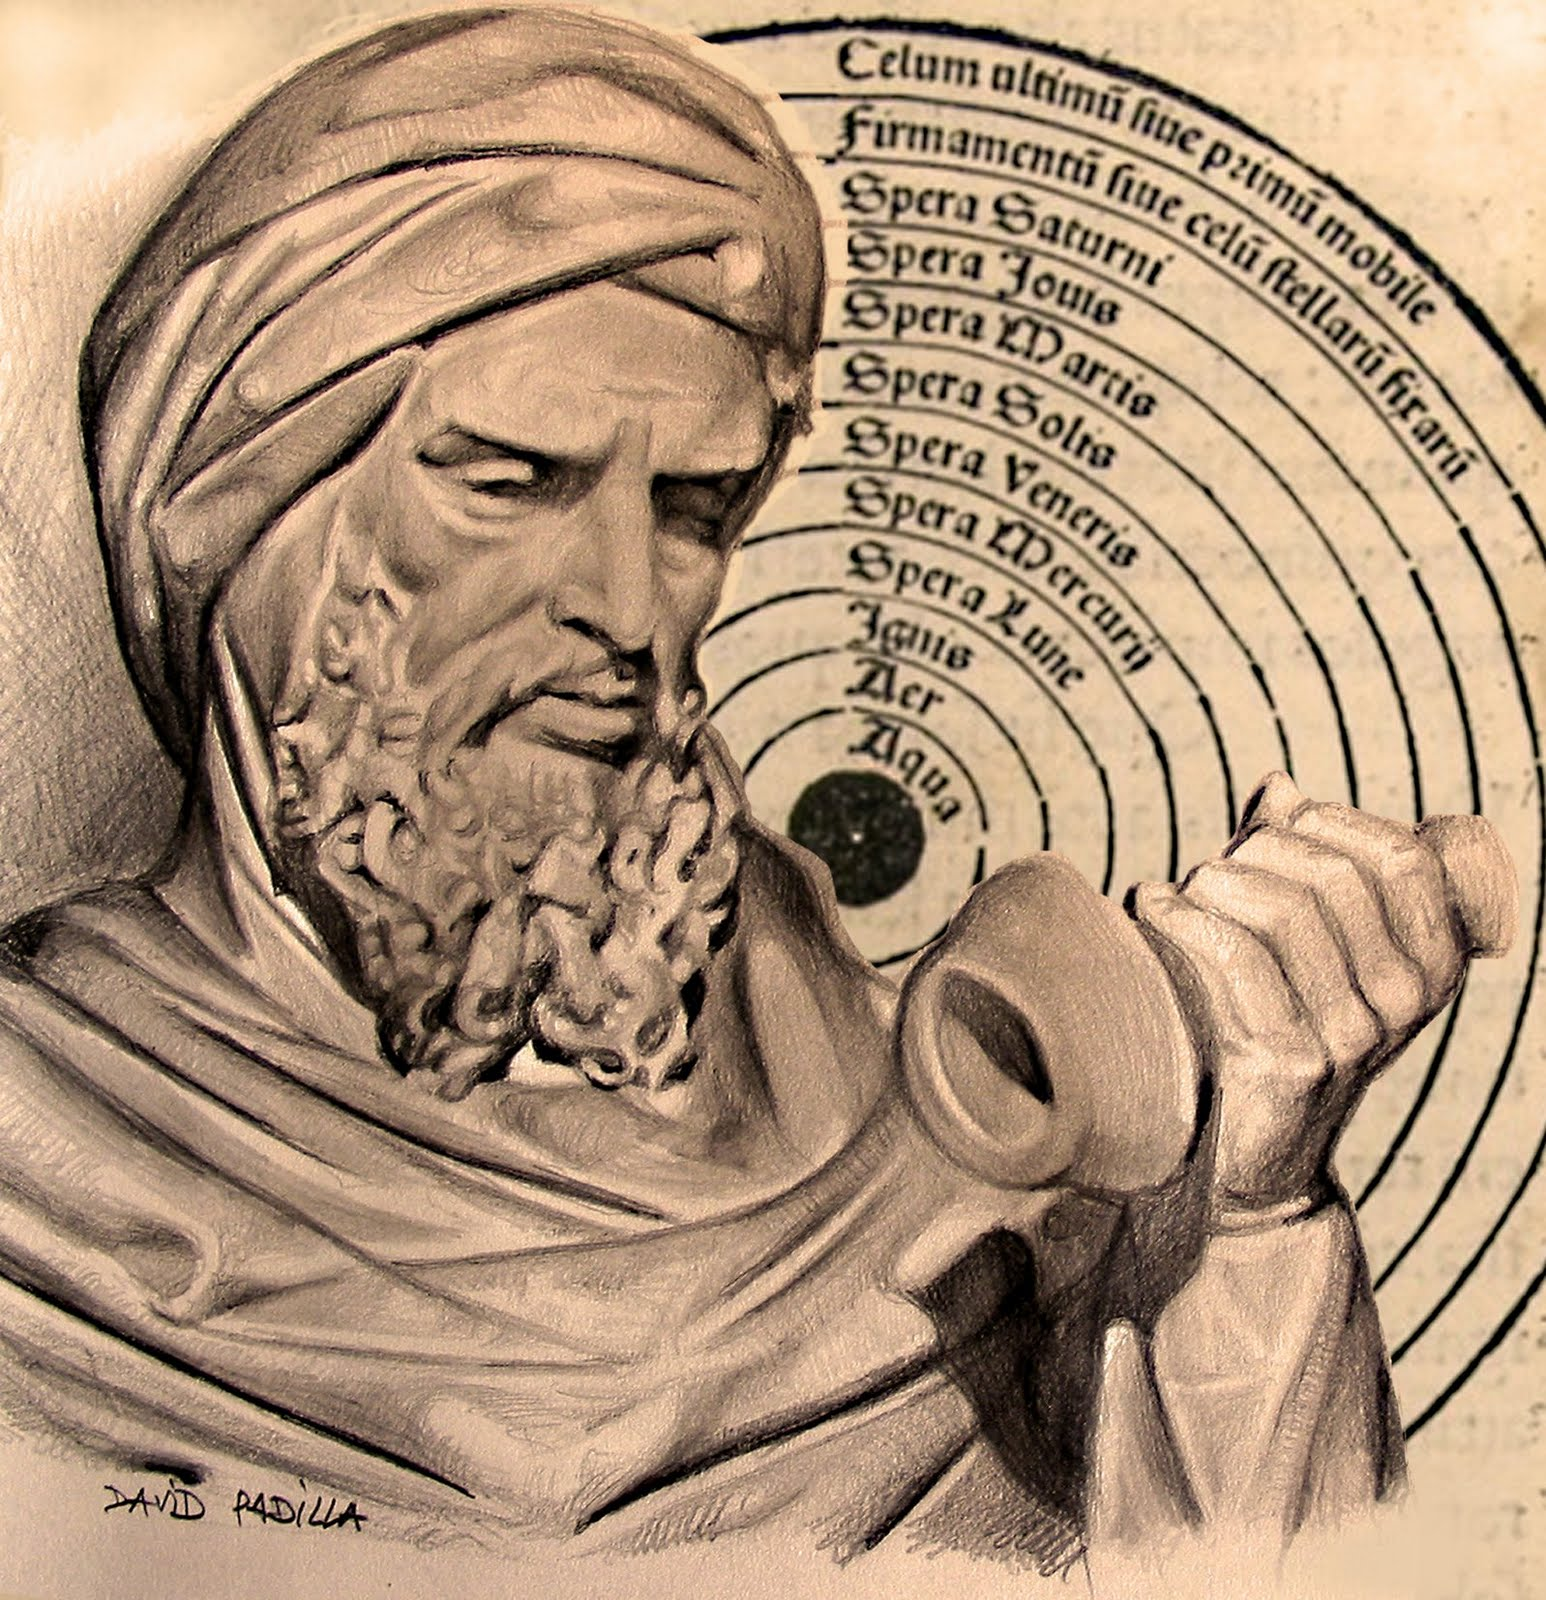 ibn rushd (averroes) (1126-1198) mar habib the islamic philosopher and jurist ibn rushd is known primarily for his great commentaries on aristotle, which had a profound impact on the mediaeval west, where he gained wide recognition among both christian and jewish scholars.